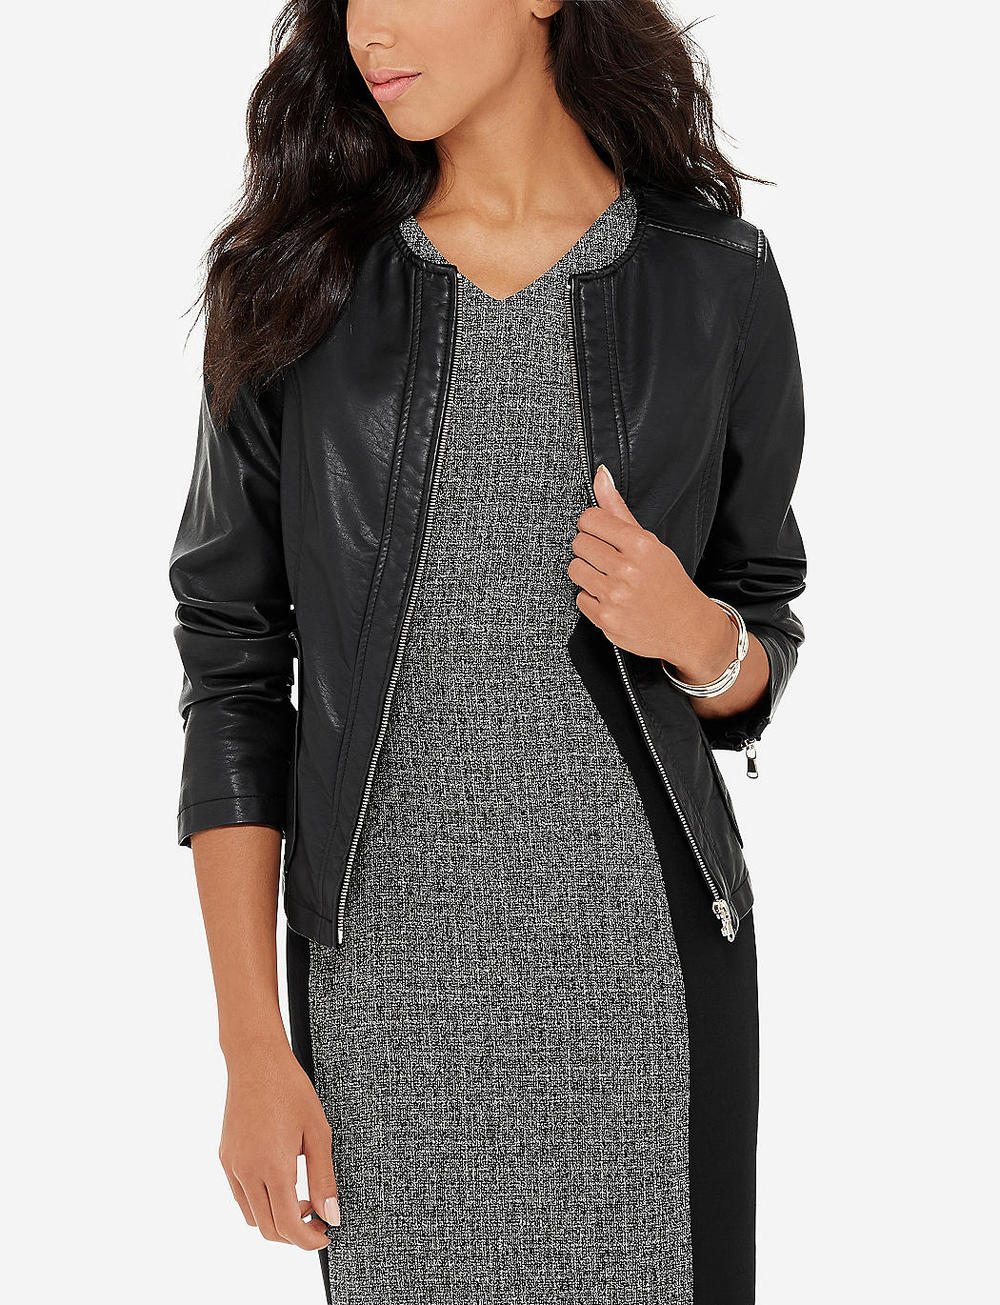 Faux Leather Jacket. the Limited. Was: $139 Now: $69.